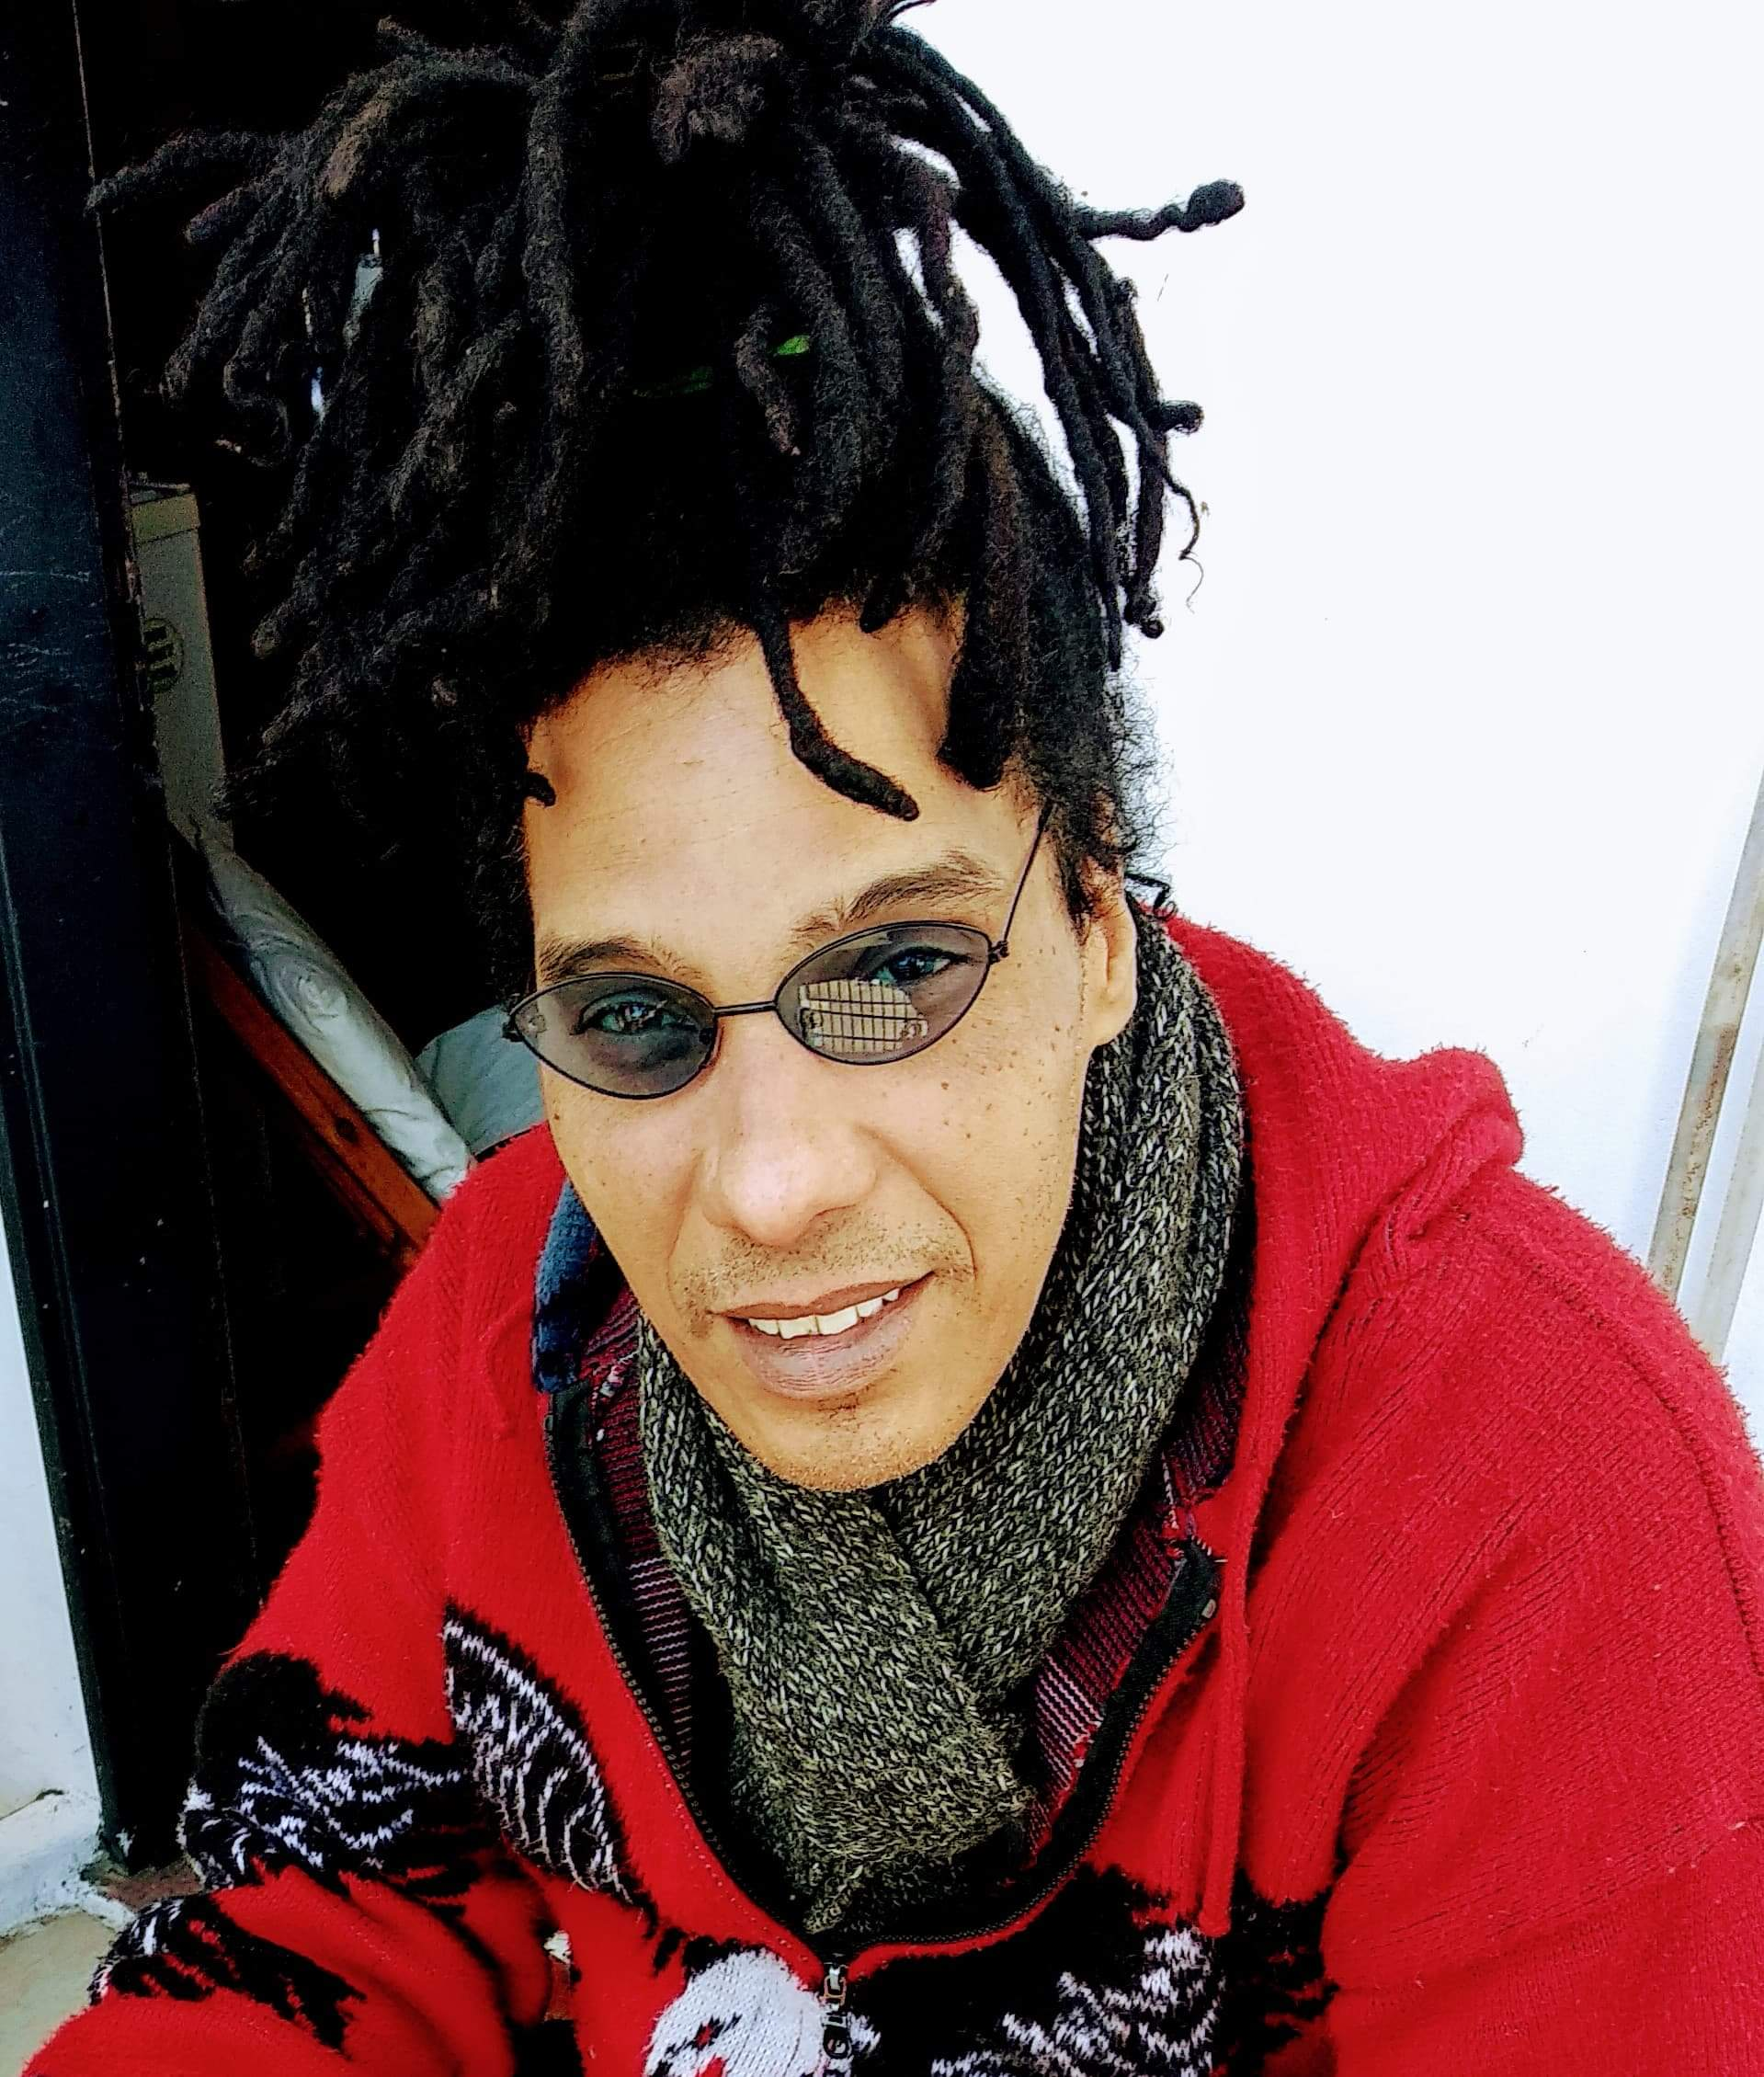 So I was trolling the streets meeting many street artists until one day an Englishman David Butlle known as (Mr. Bongo) arrives in Cuba looking for an orchestra to produce an album for him in Britain